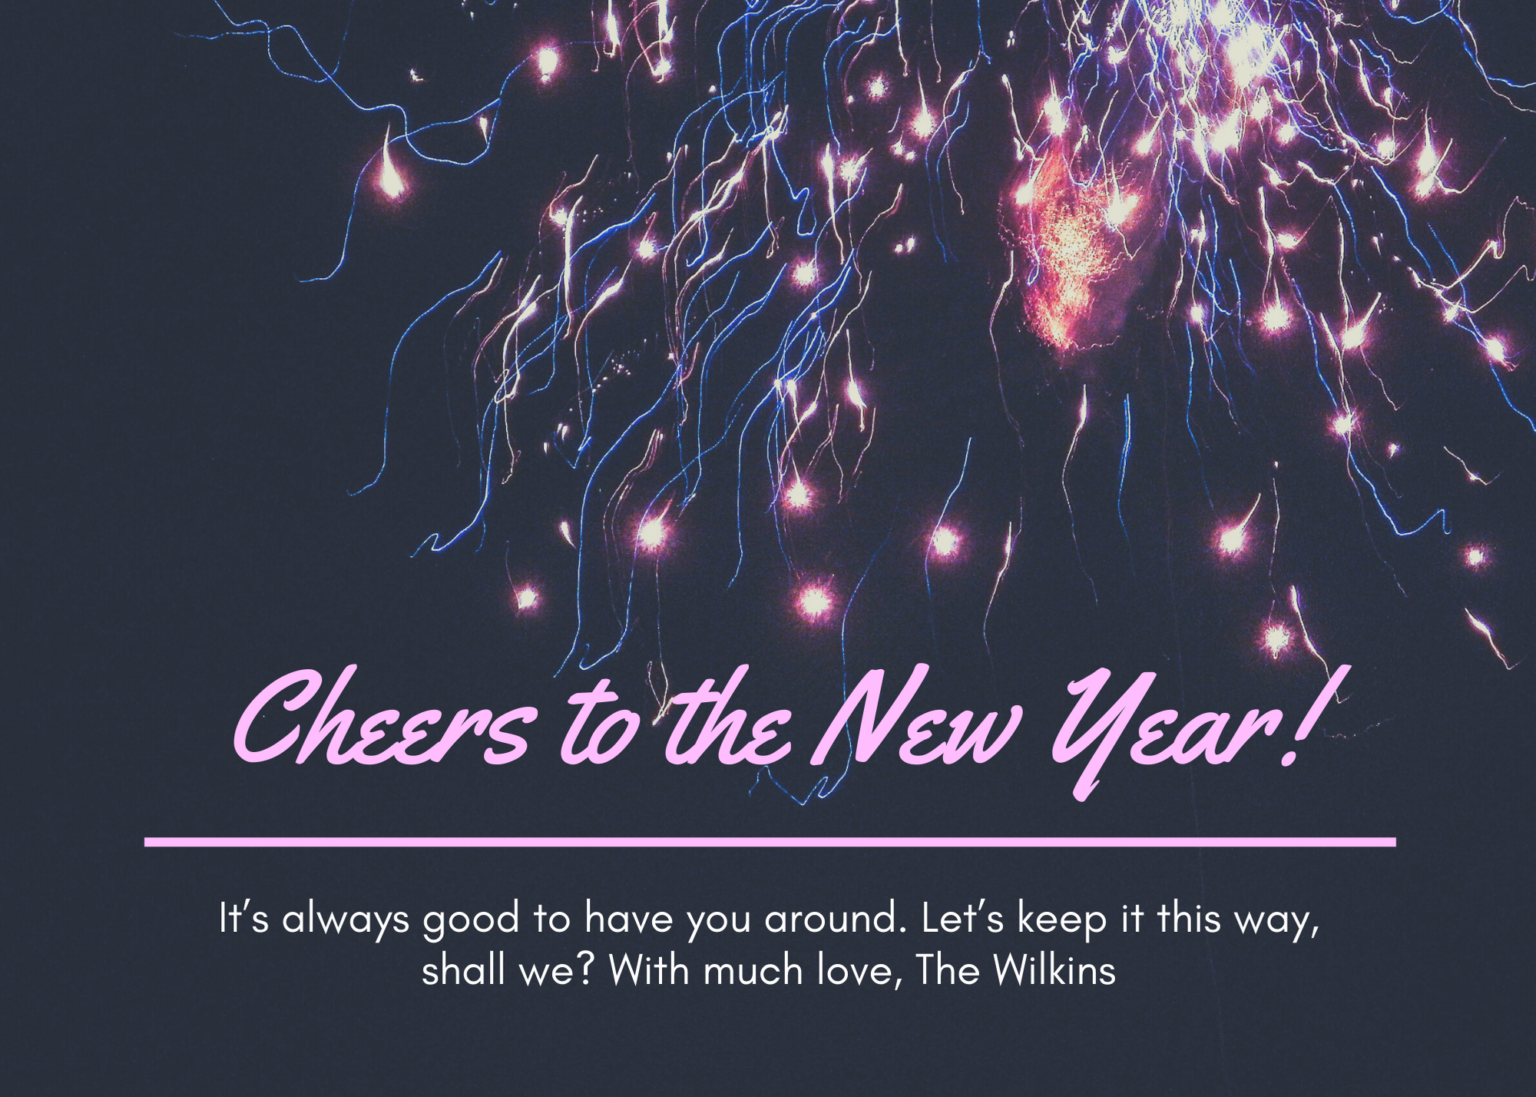 Happy New Year New Year Wishes Cards Happy New Year Message